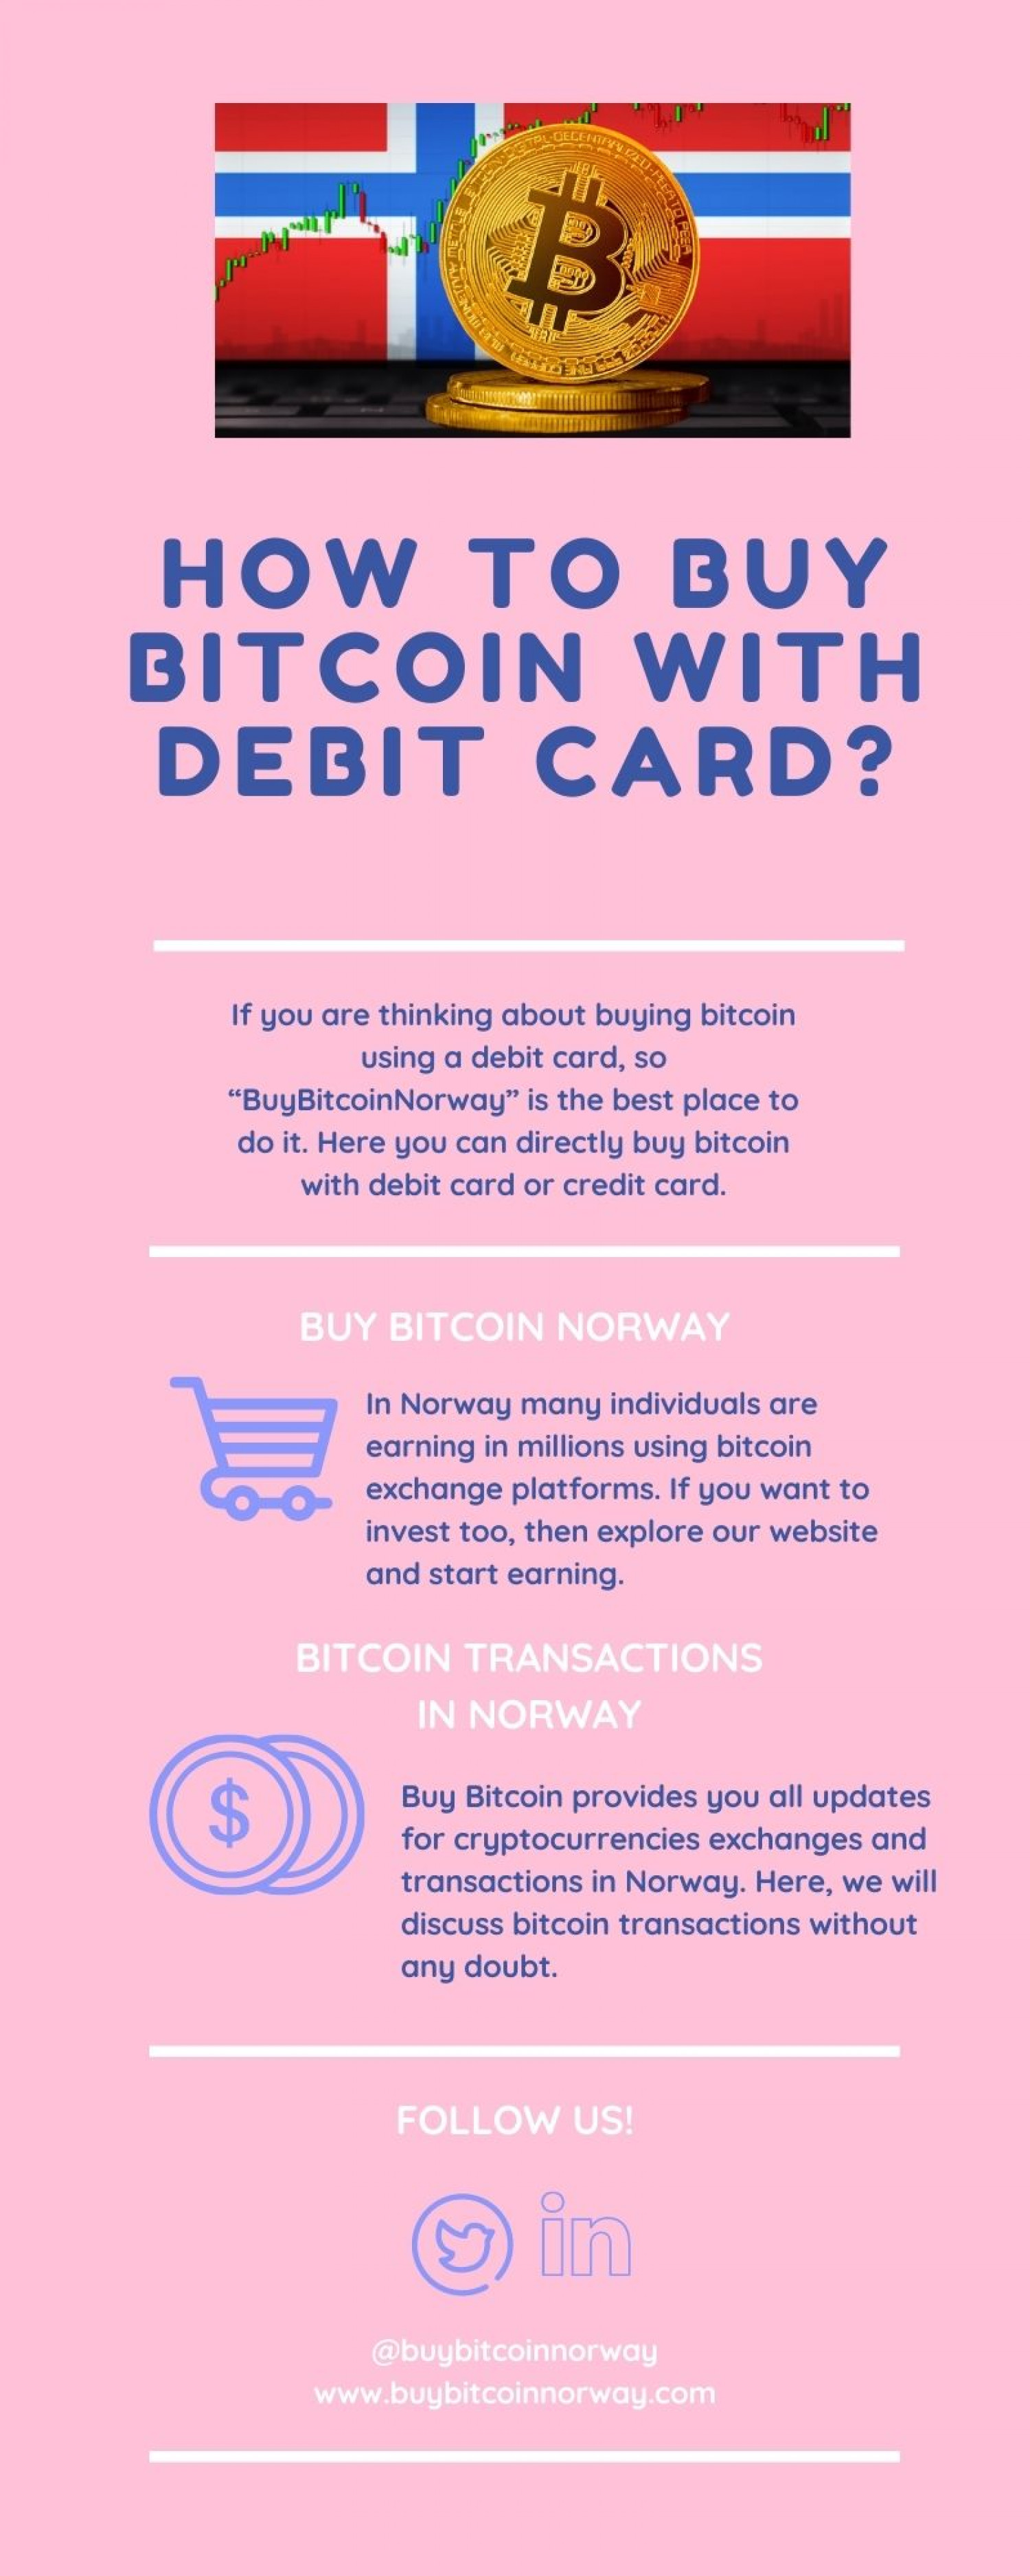 How to Buy Bitcoin With Debit Card Infographic